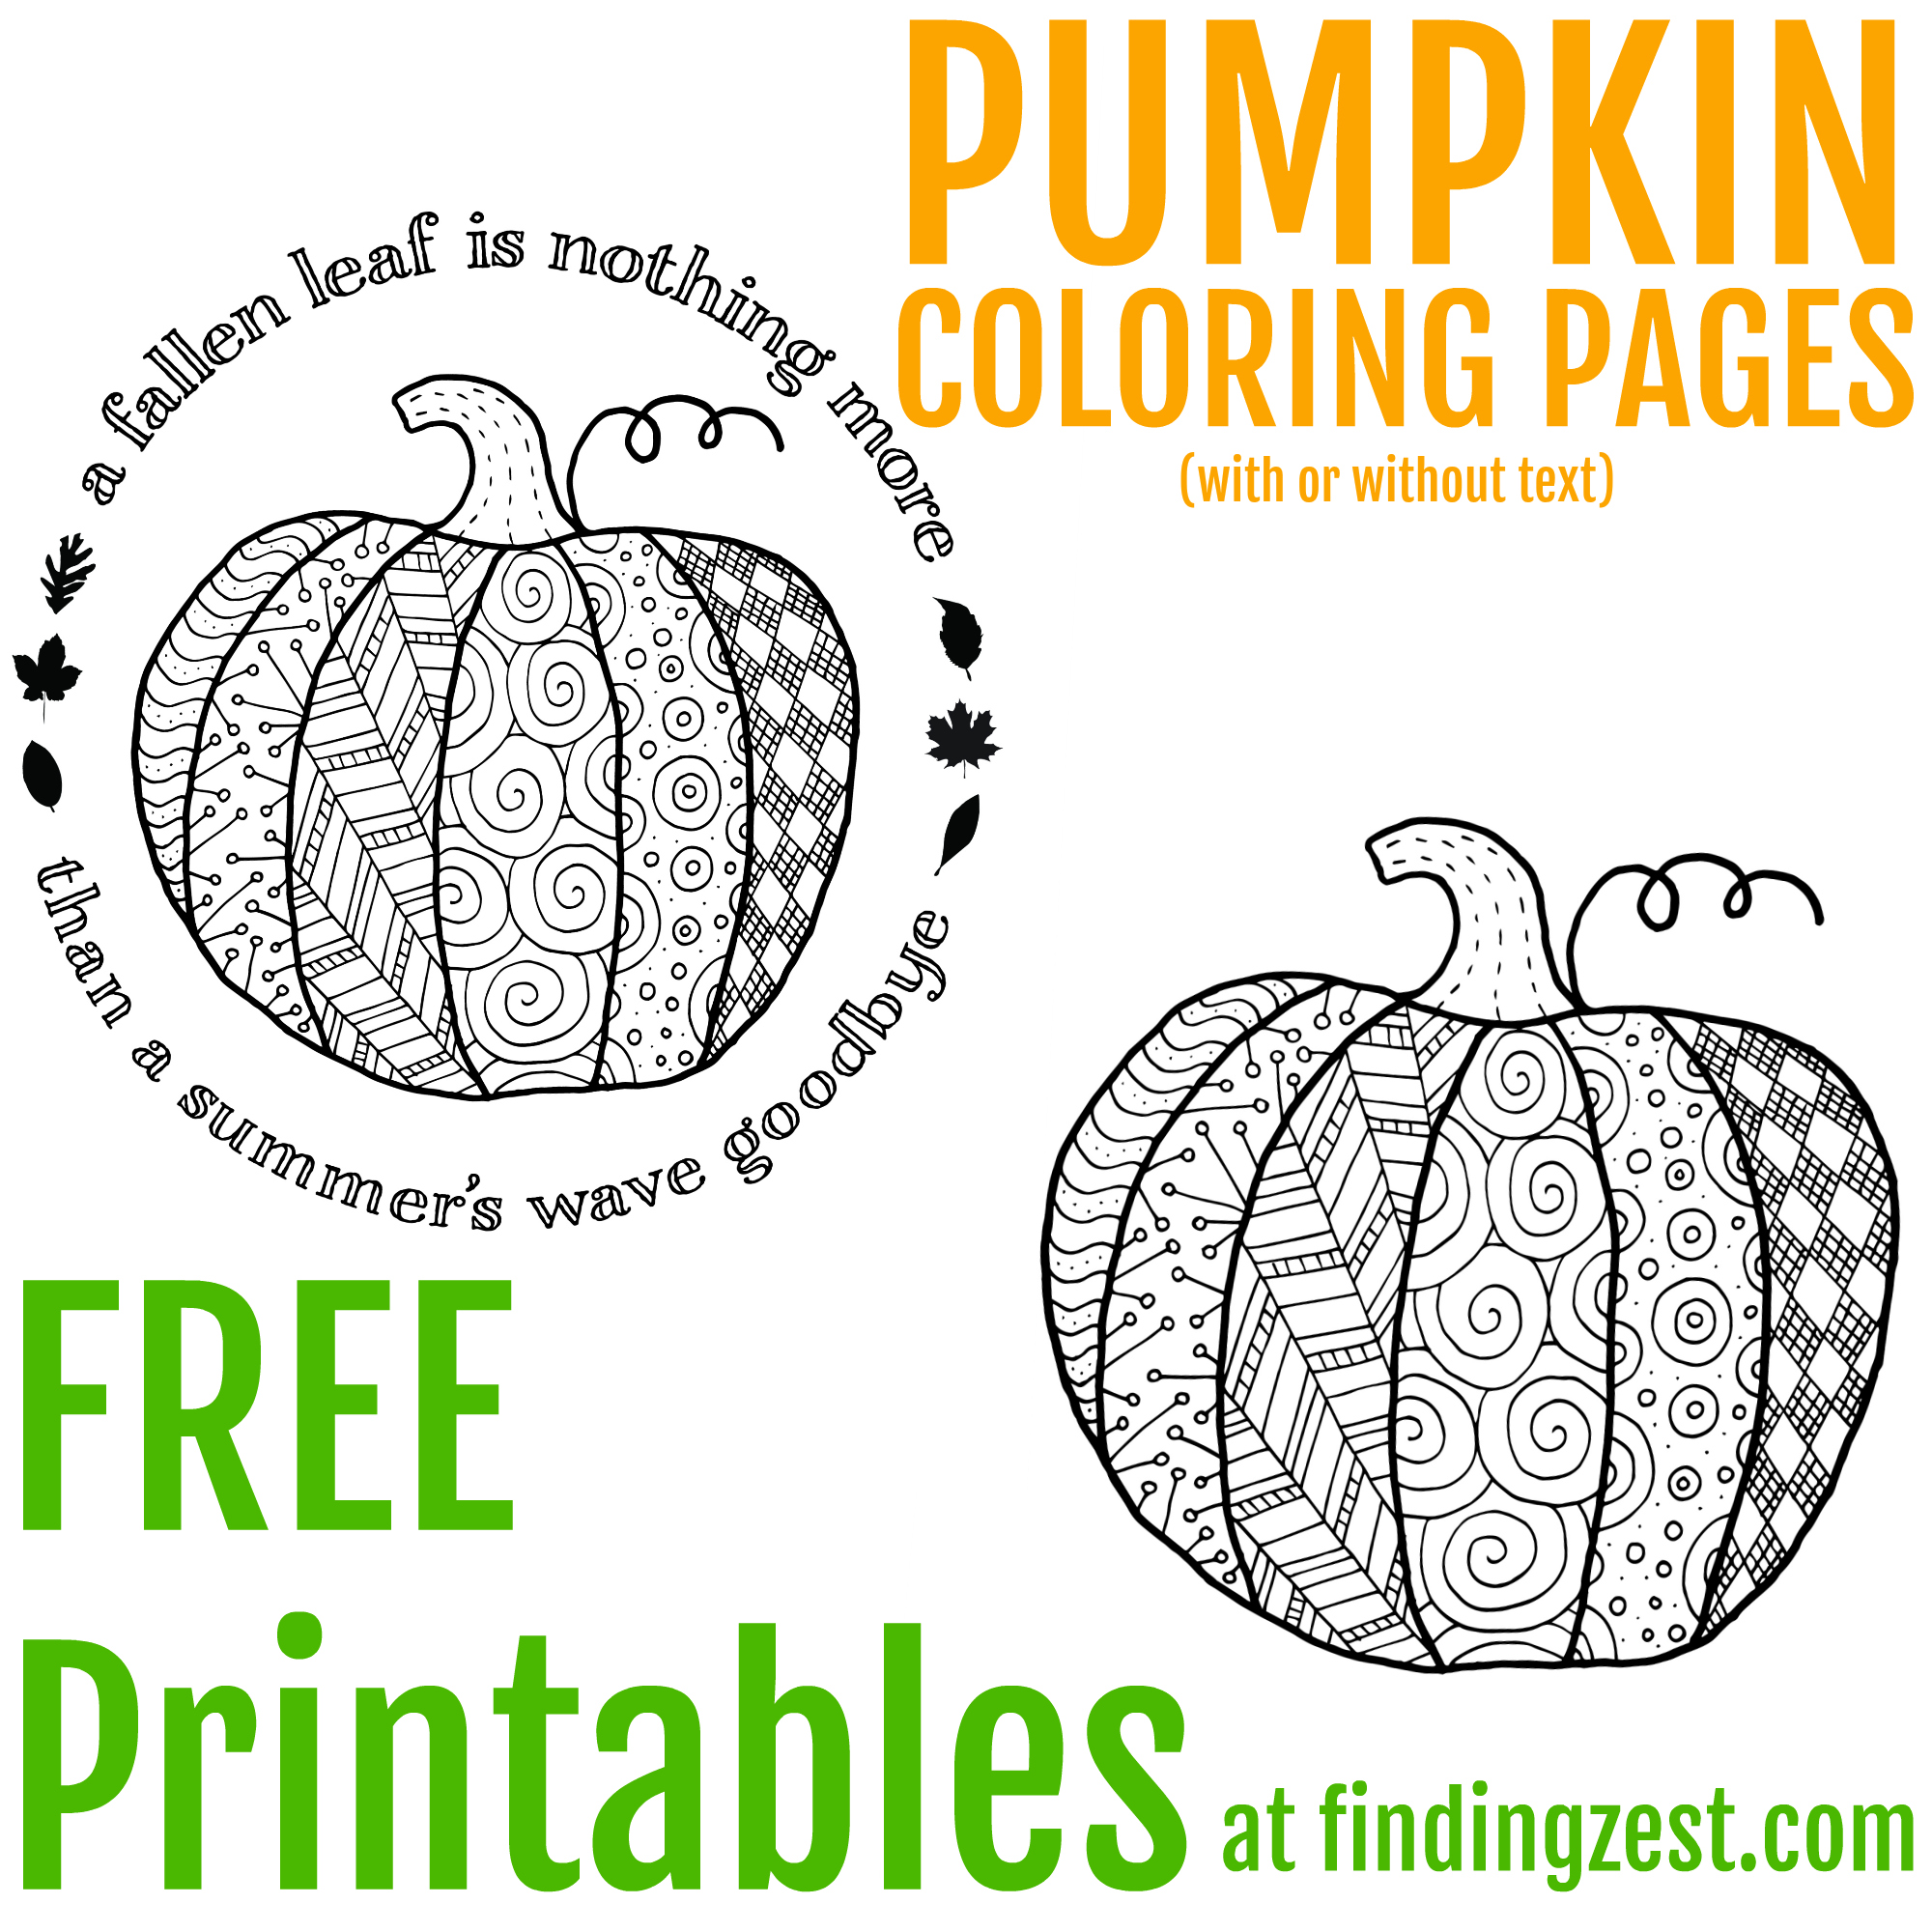 Pumpkin Coloring Page Printable Finding Zest